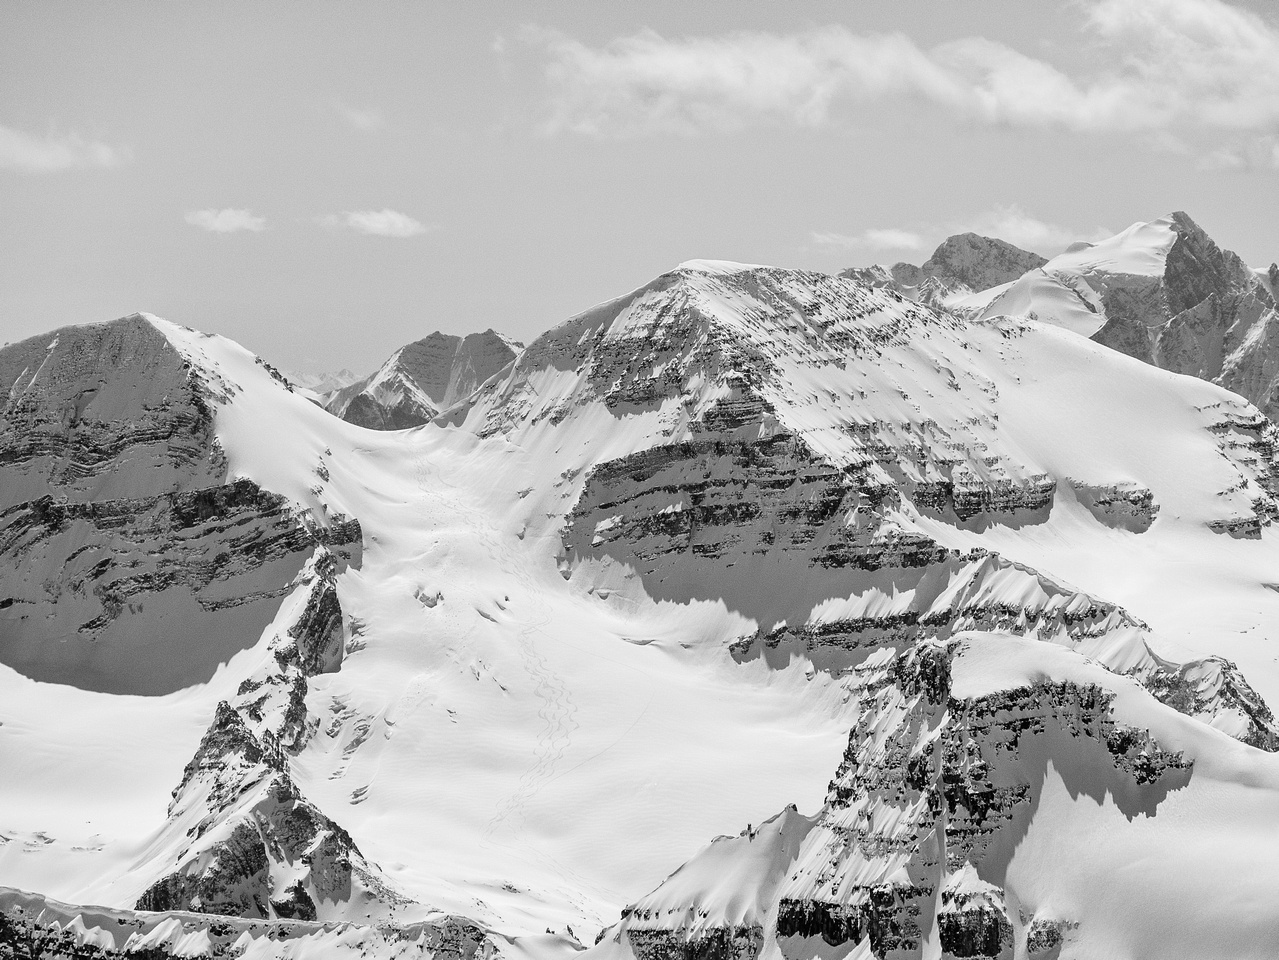 The presidents are awesome Yoho snow ascents and Mount Vaux (on the right) is also an amazing scramble.